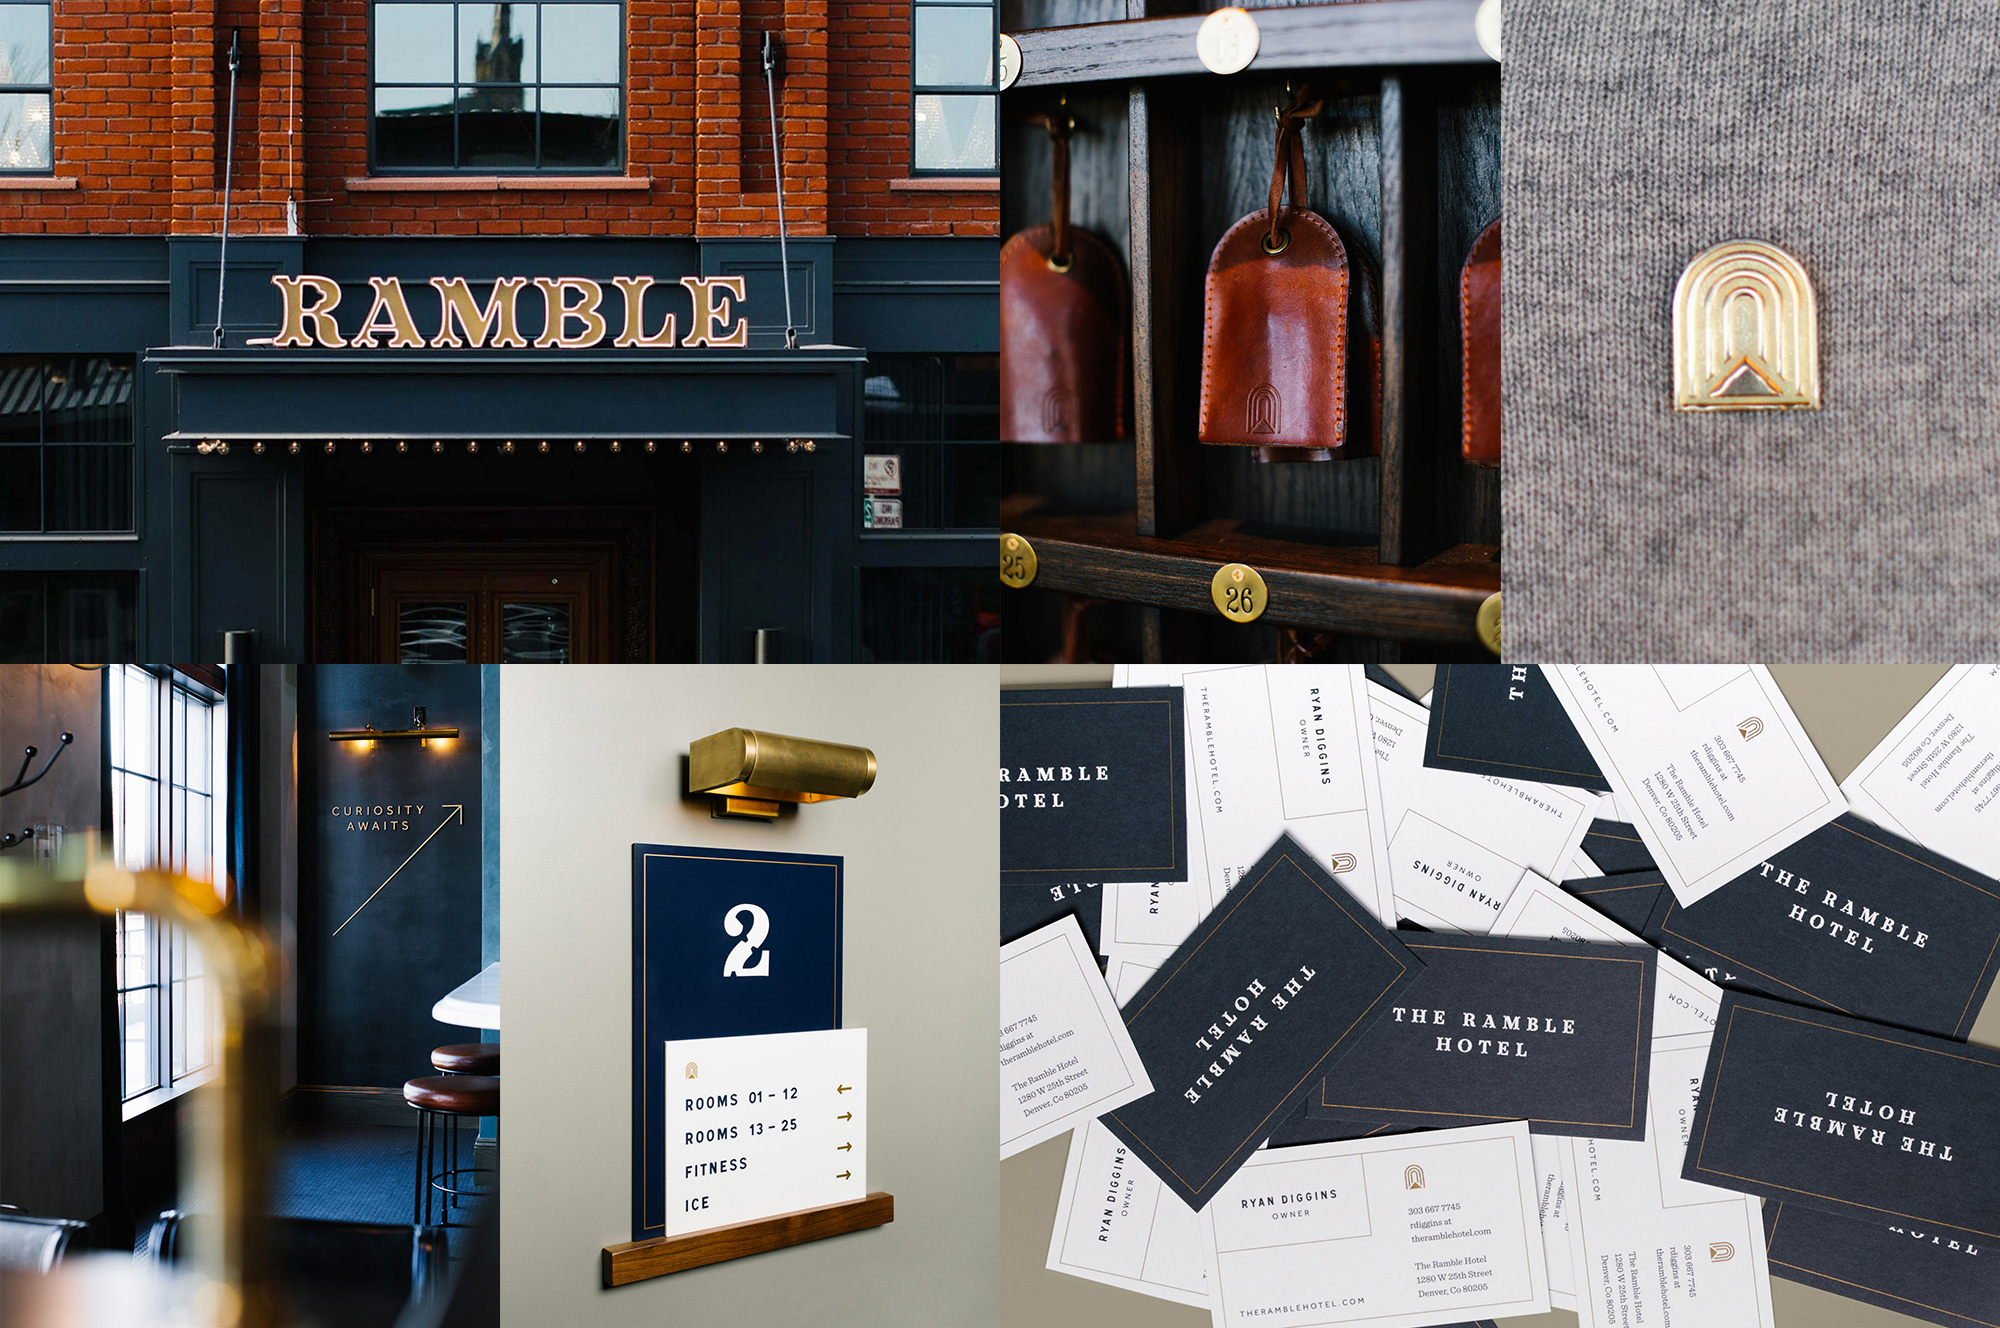 The Ramble by Mast